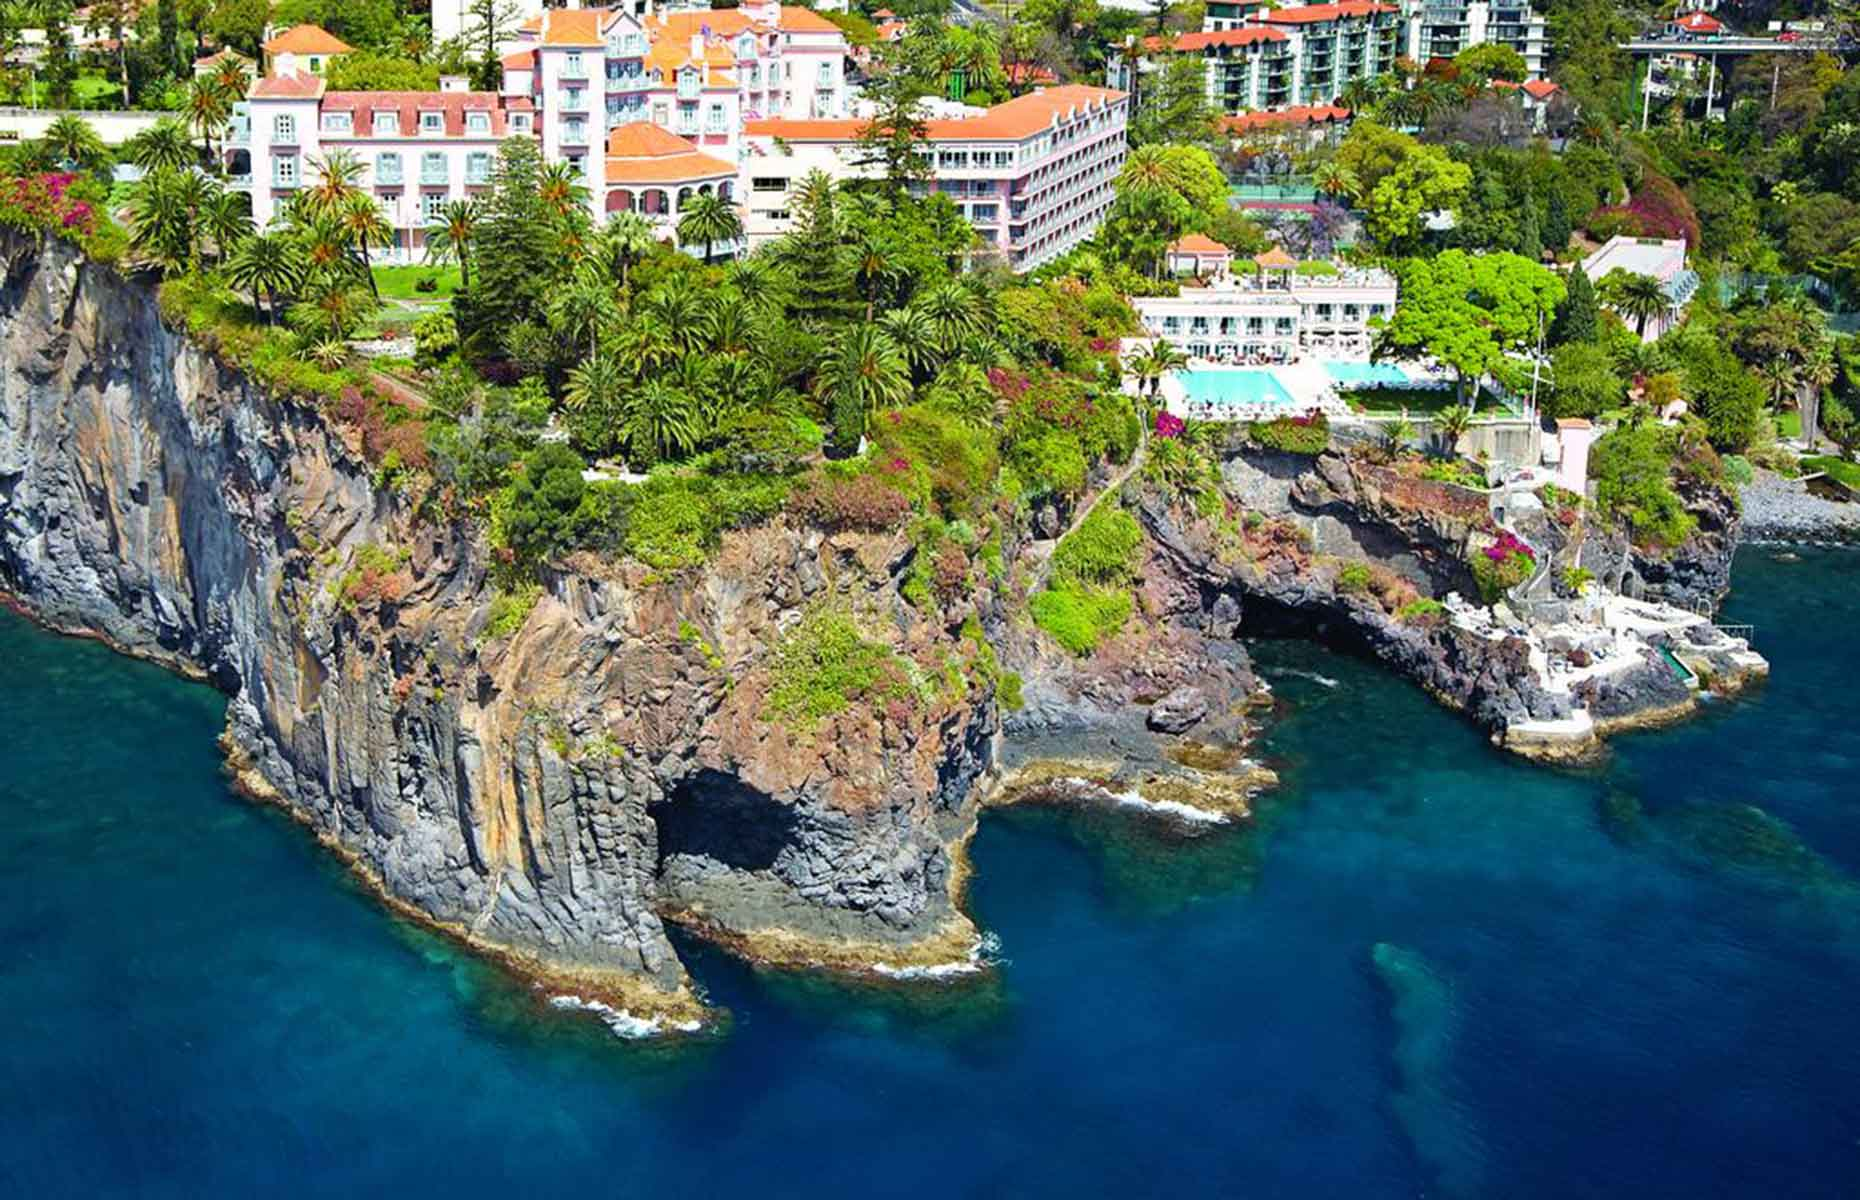 Belmond's Reid's Palace is one of Funchal's most luxurious stays (Image: Belmond Reid's Palace/Booking.com)